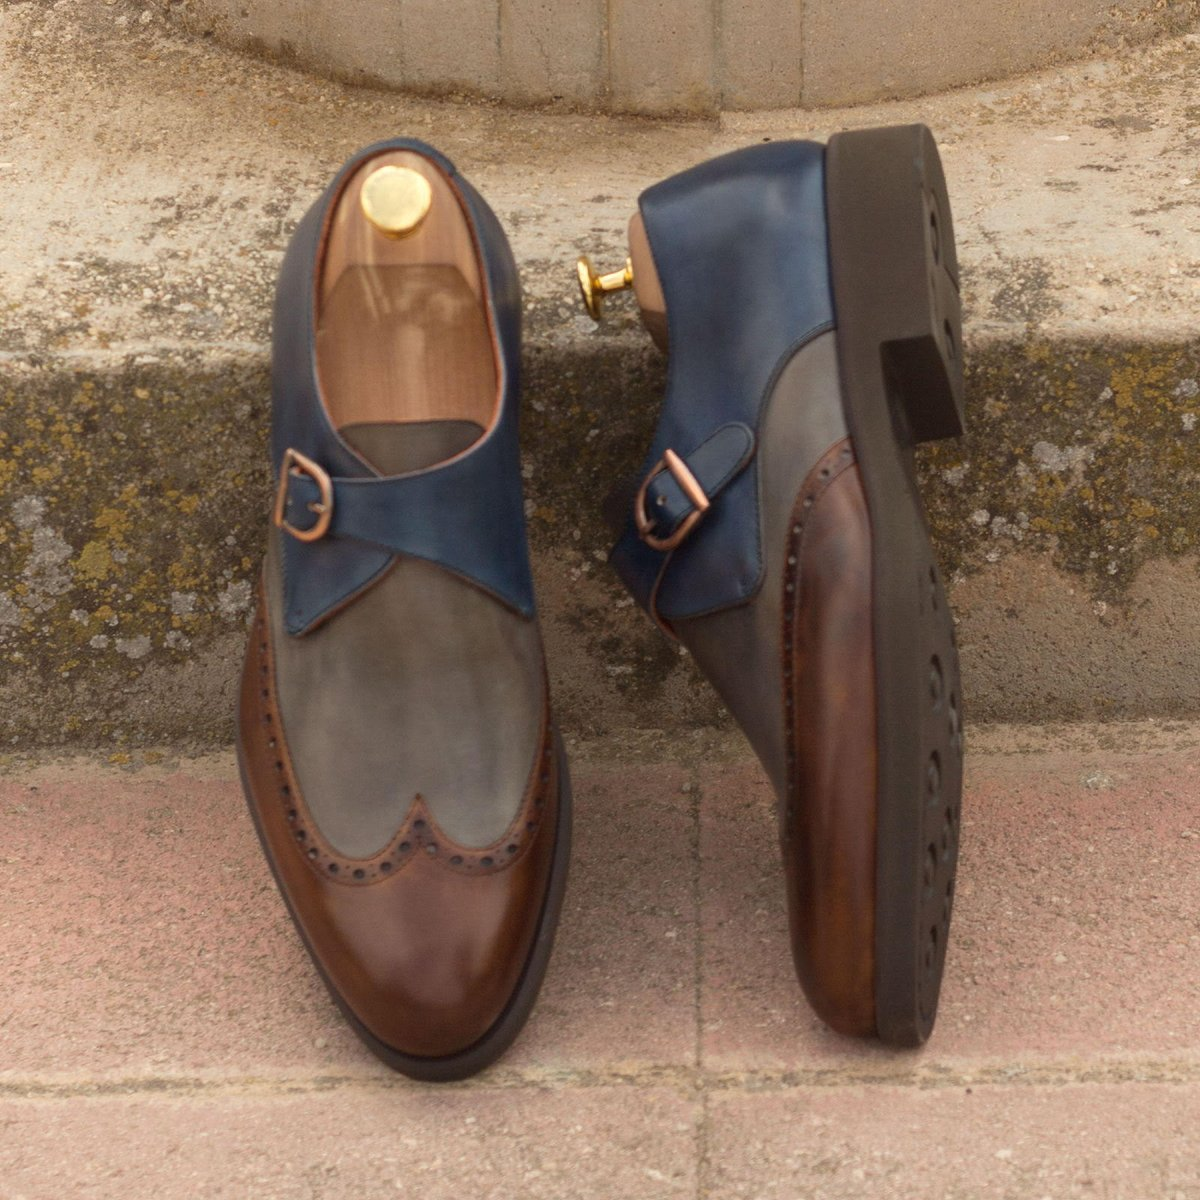 Custom shoes for any occasion.   #moderncasual #customshoes #menswear #fallfashion #fall #custom #design #business #casual #businesscasual https://t.co/BYRlbReL1N